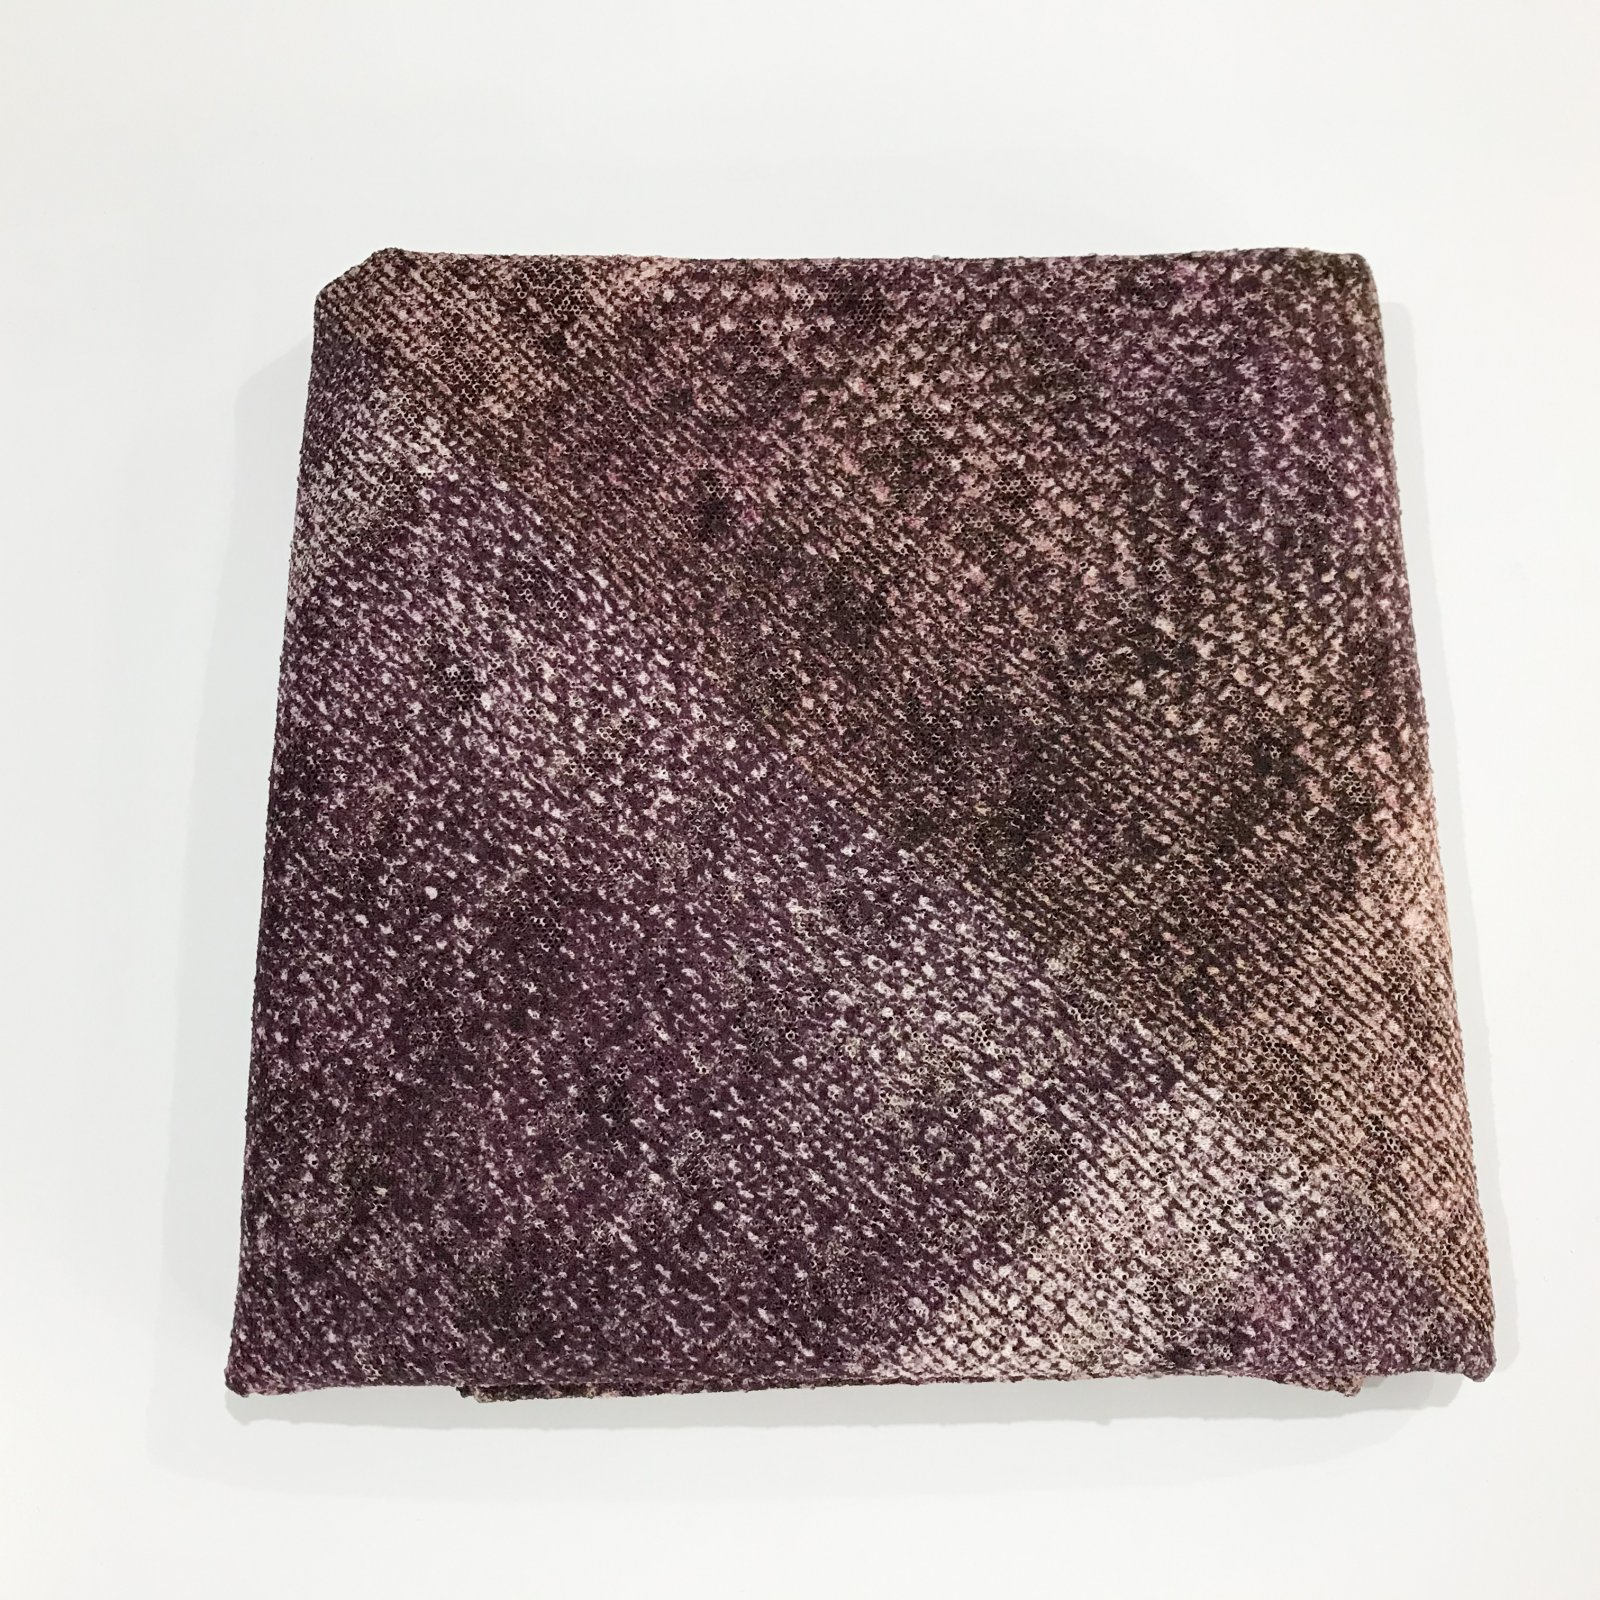 1 1/2 yards - French Lace Knit